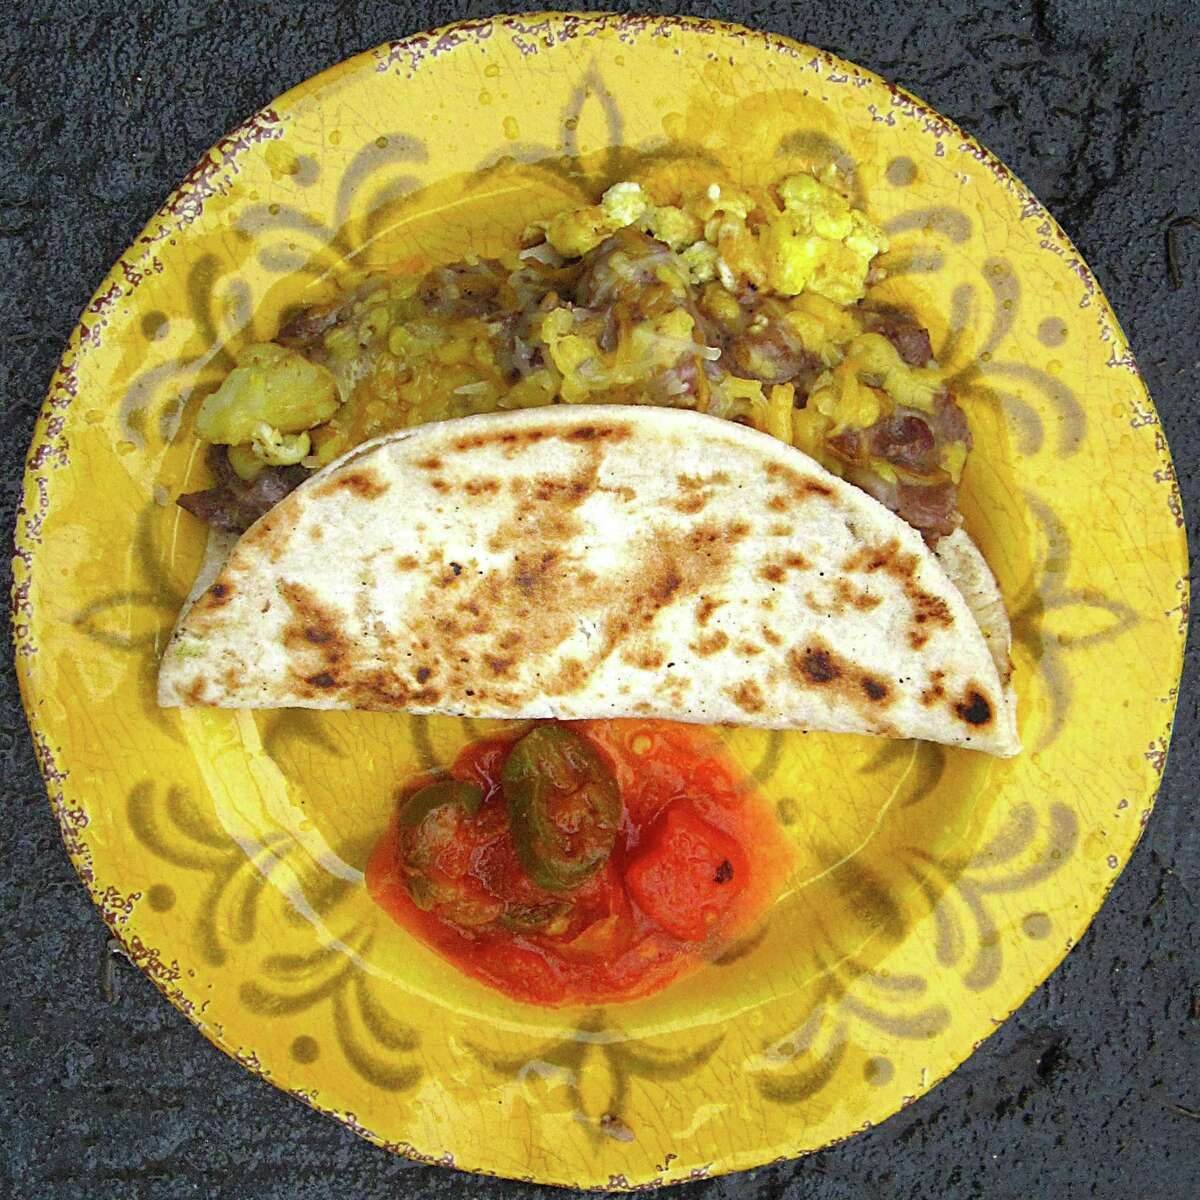 A taco called simply Moe starts as a simple potato and egg taco on a toasted handmade flour tortilla, but then it goes turbo with carne guisada gravy and cheese at Georgia's Mexican Restaurant.